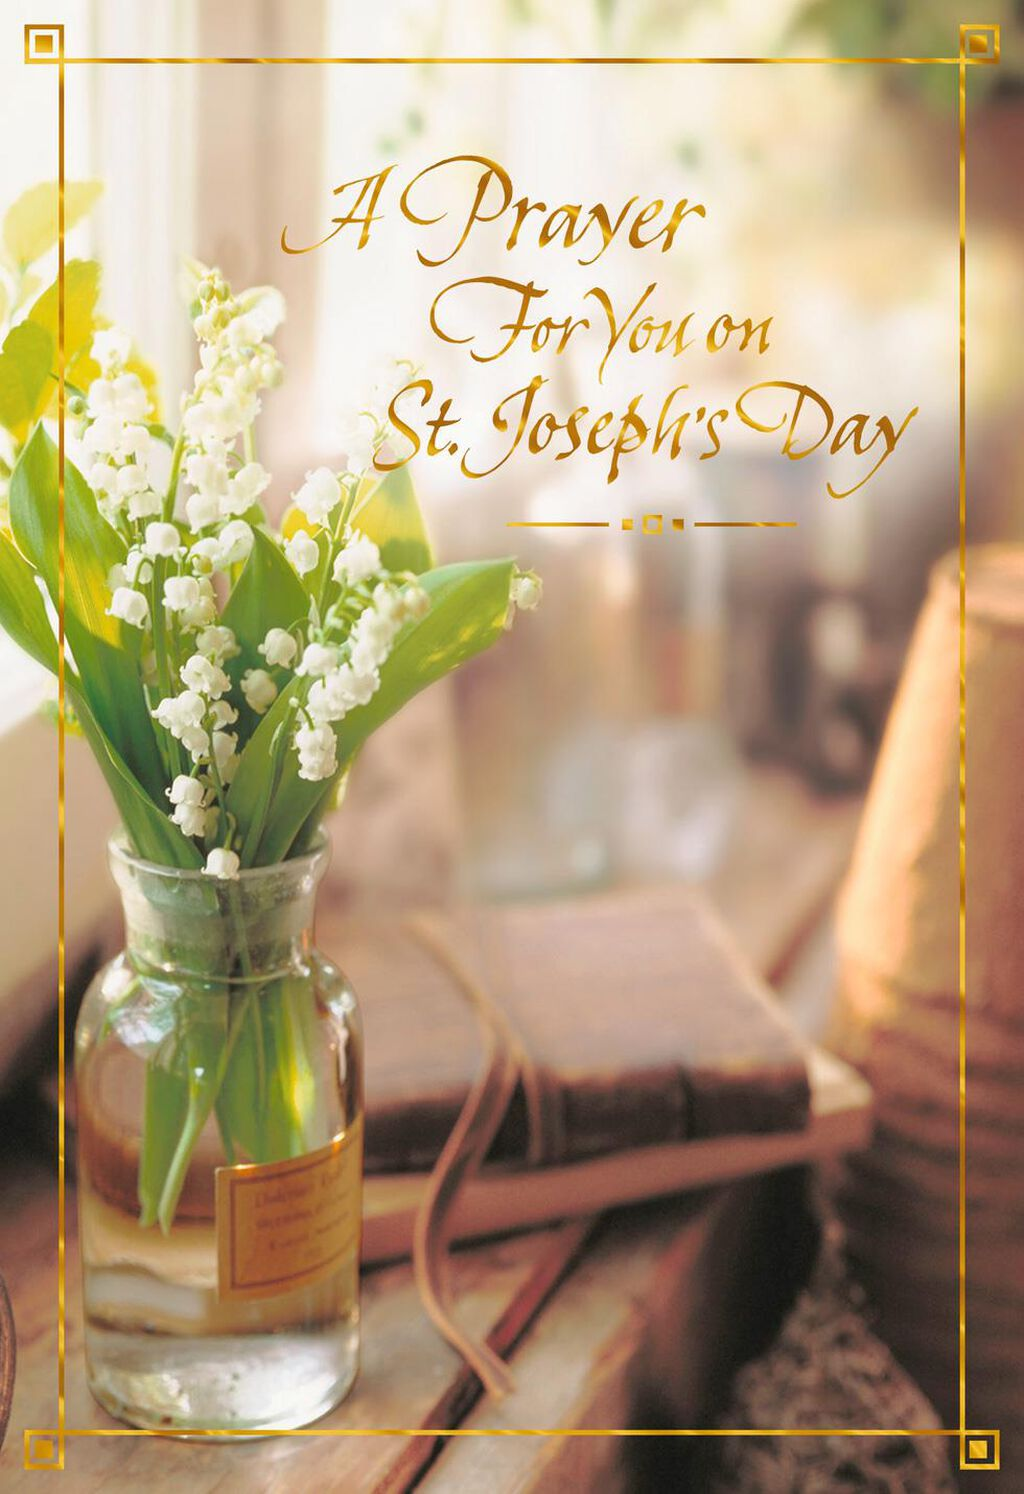 Lily Of The Valley St Josephs Day Prayer Card Greeting Cards